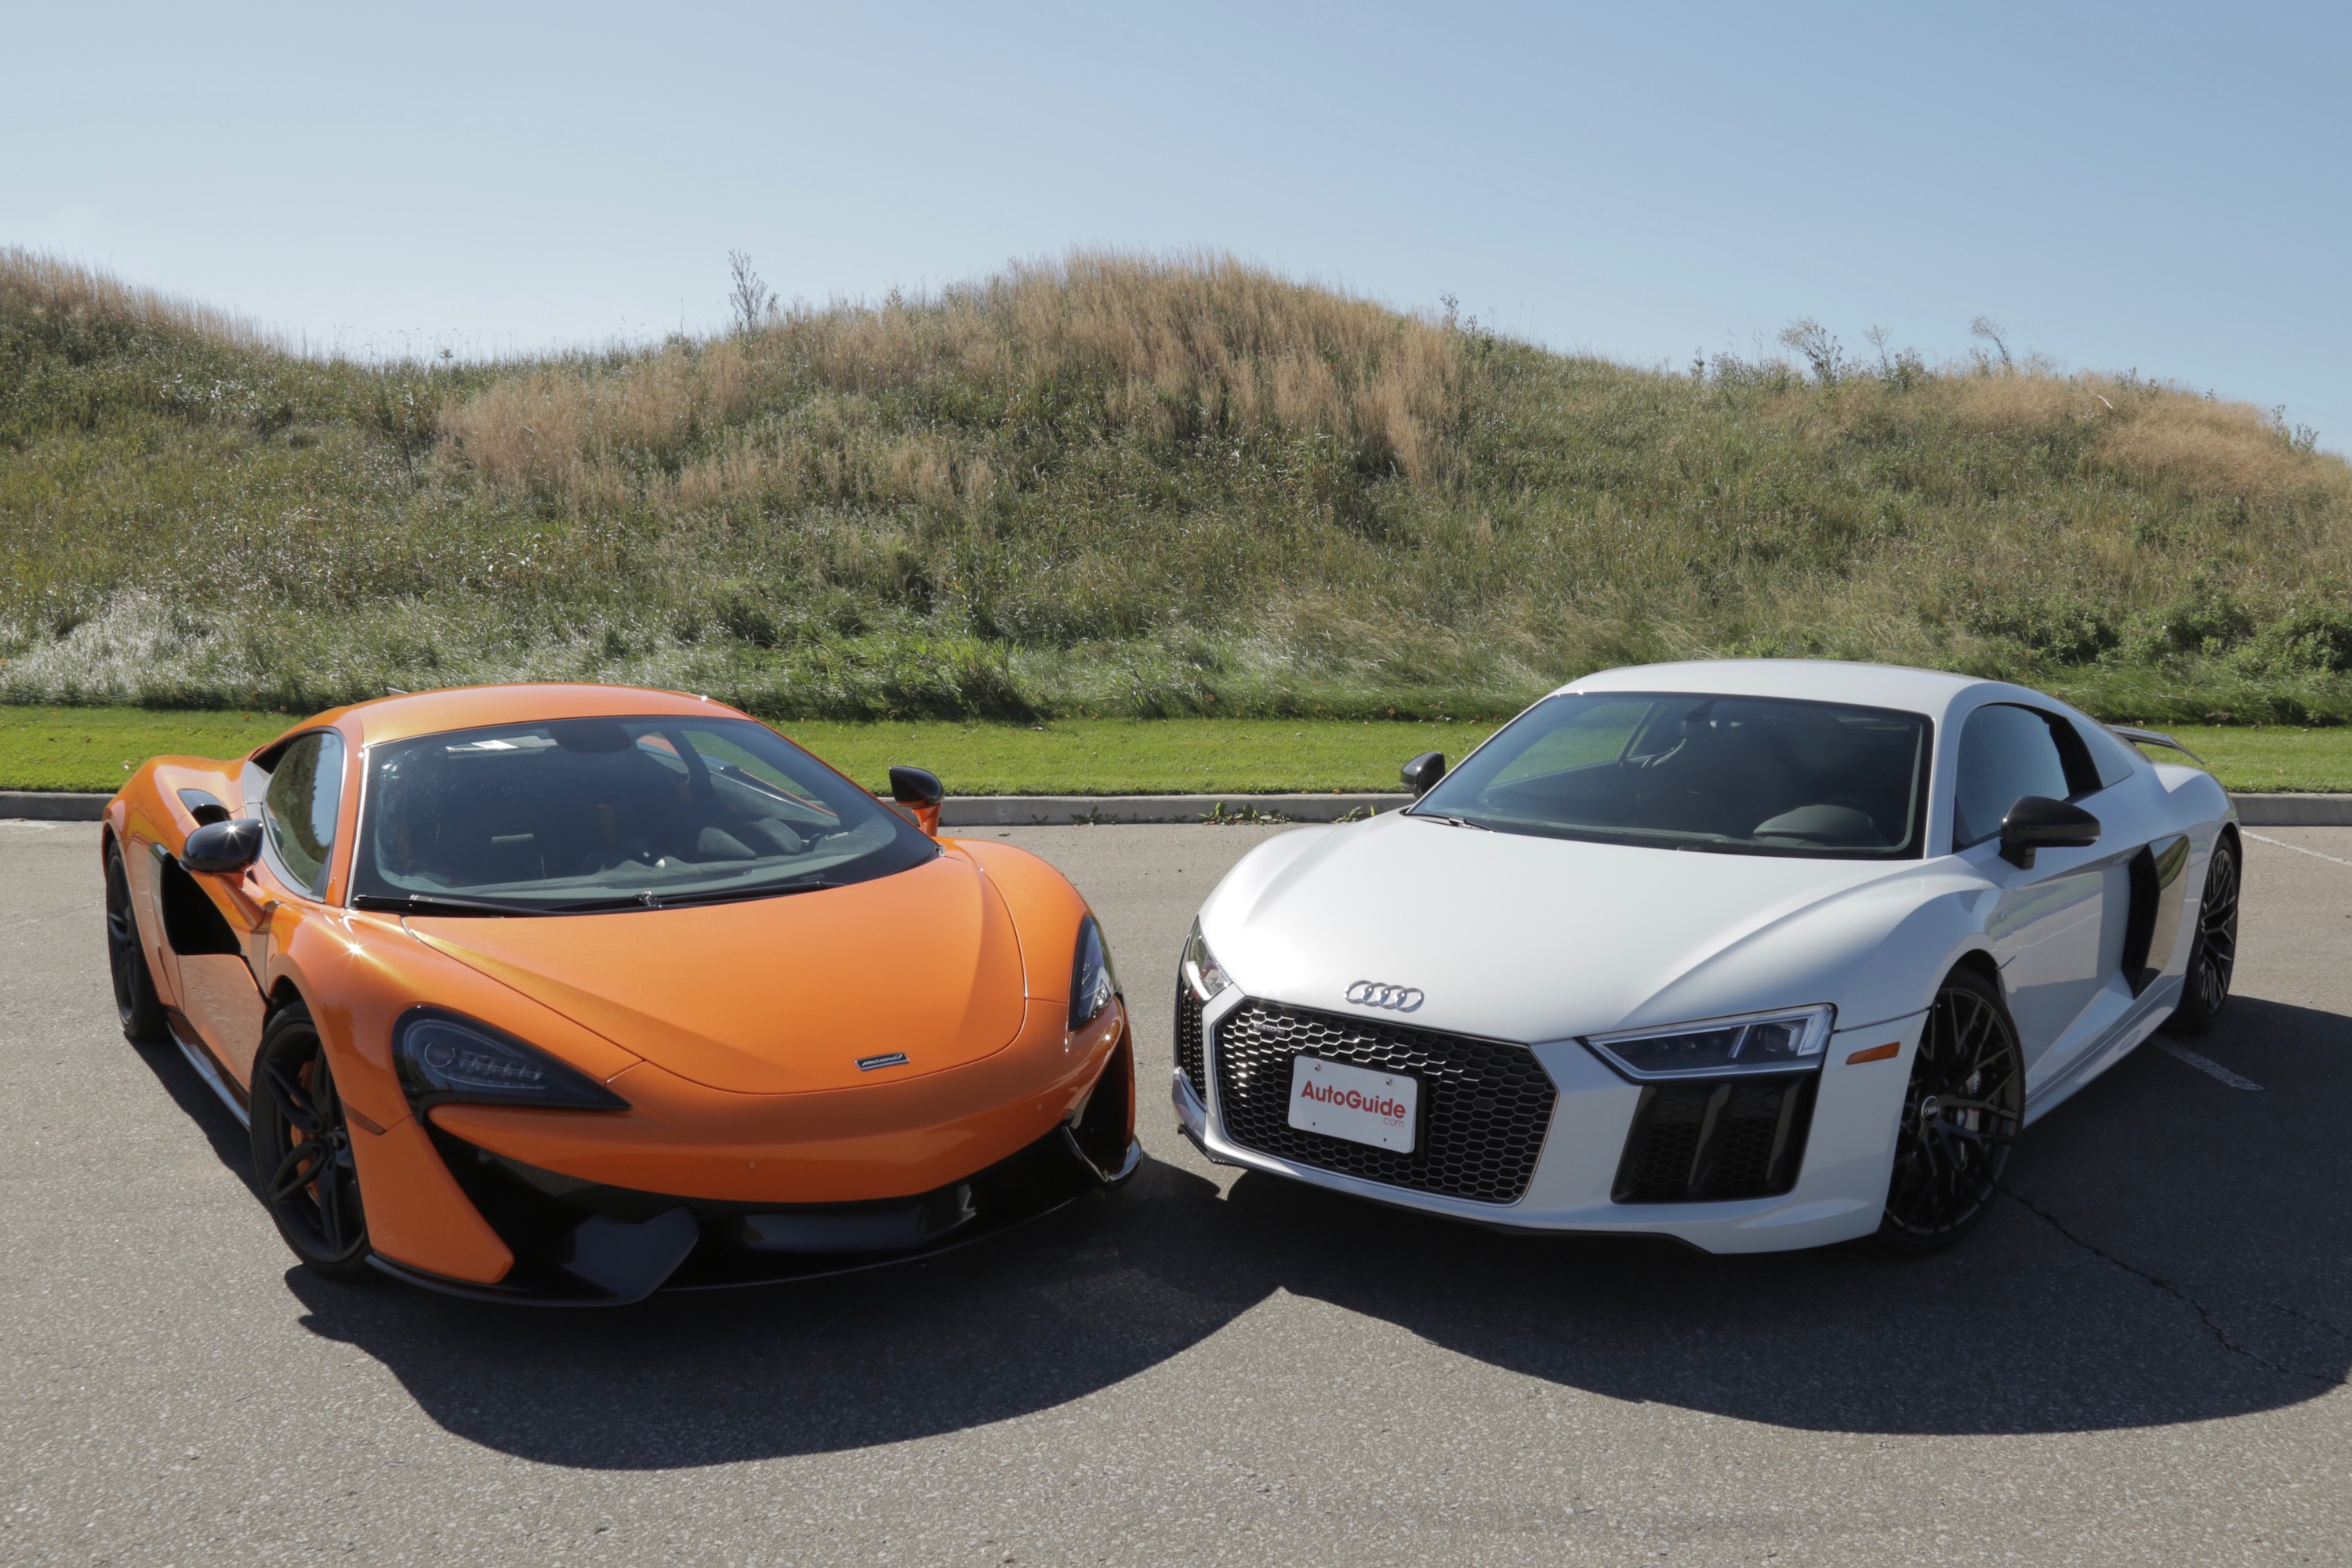 2017 audi r8 v10 plus vs mclaren 570s news. Black Bedroom Furniture Sets. Home Design Ideas